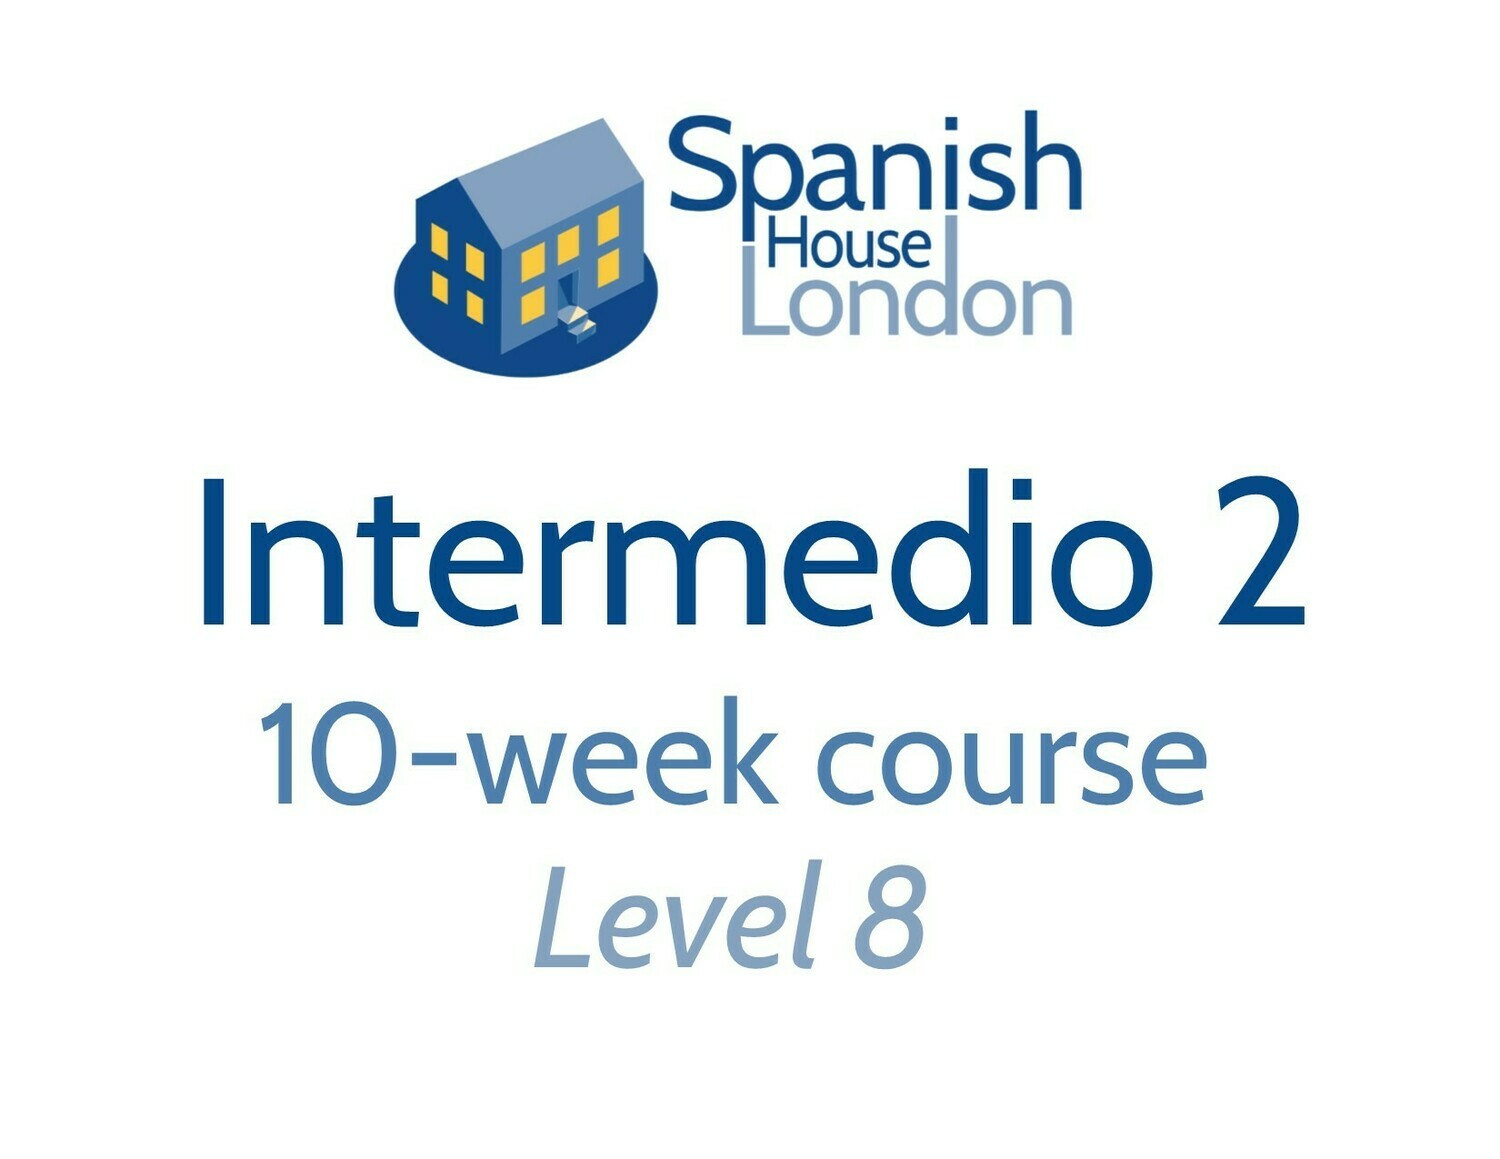 Intermedio 2 Course starting on 9th September at 6pm in Clapham North